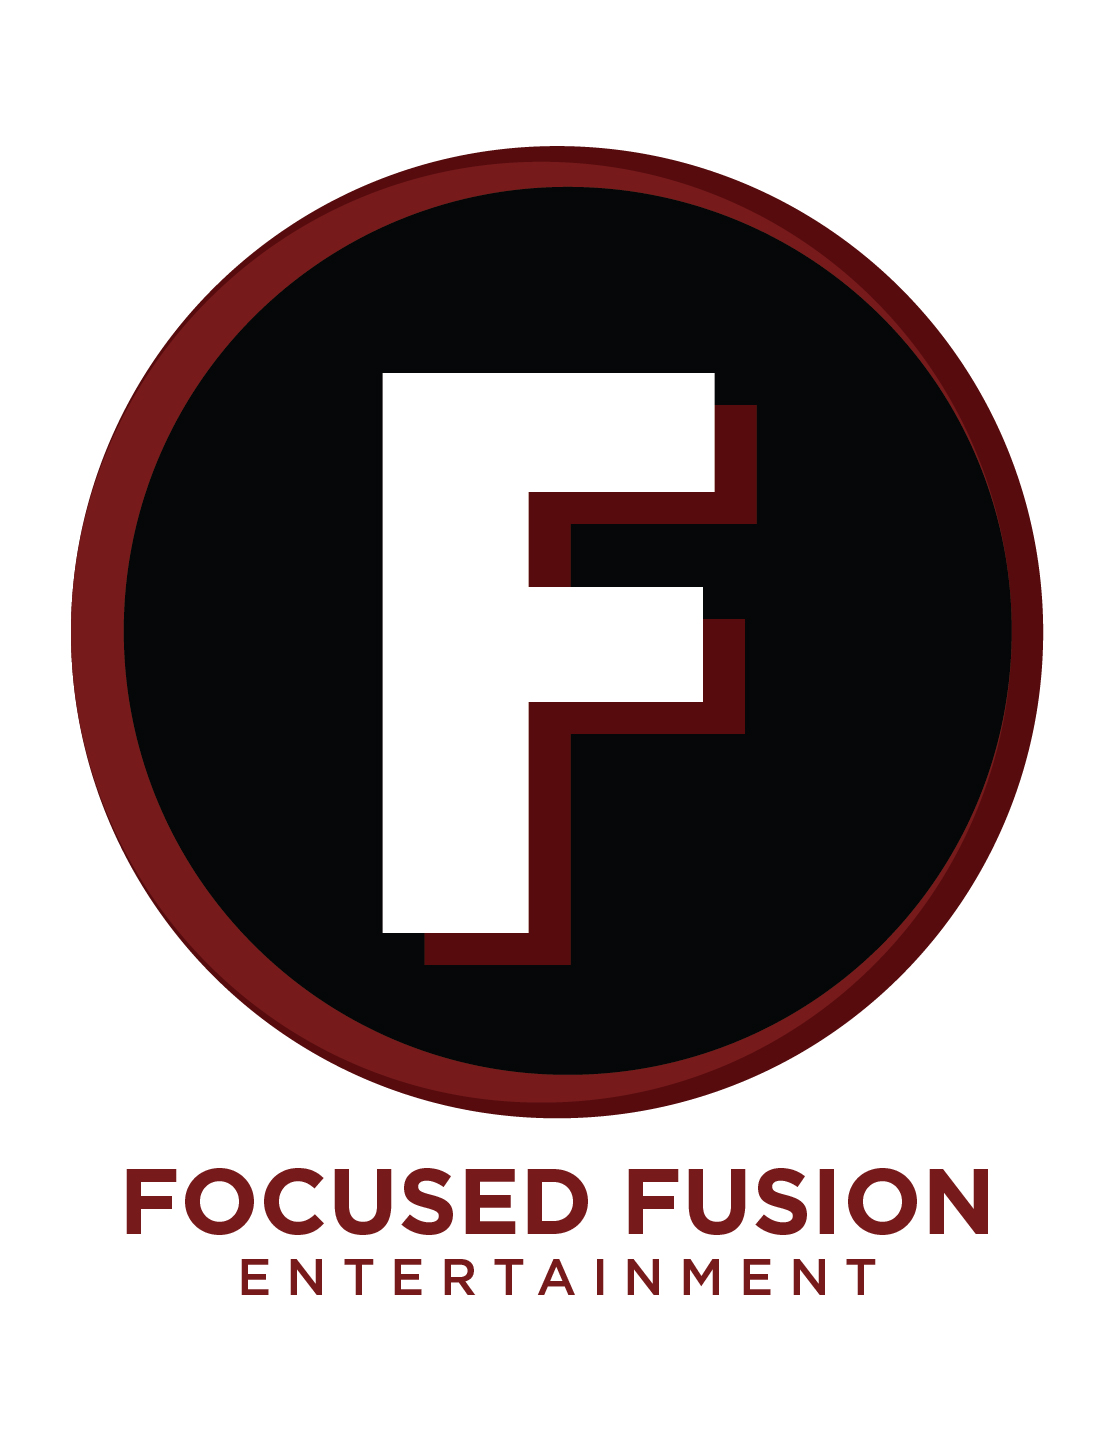 Focused Fusion Entertainment